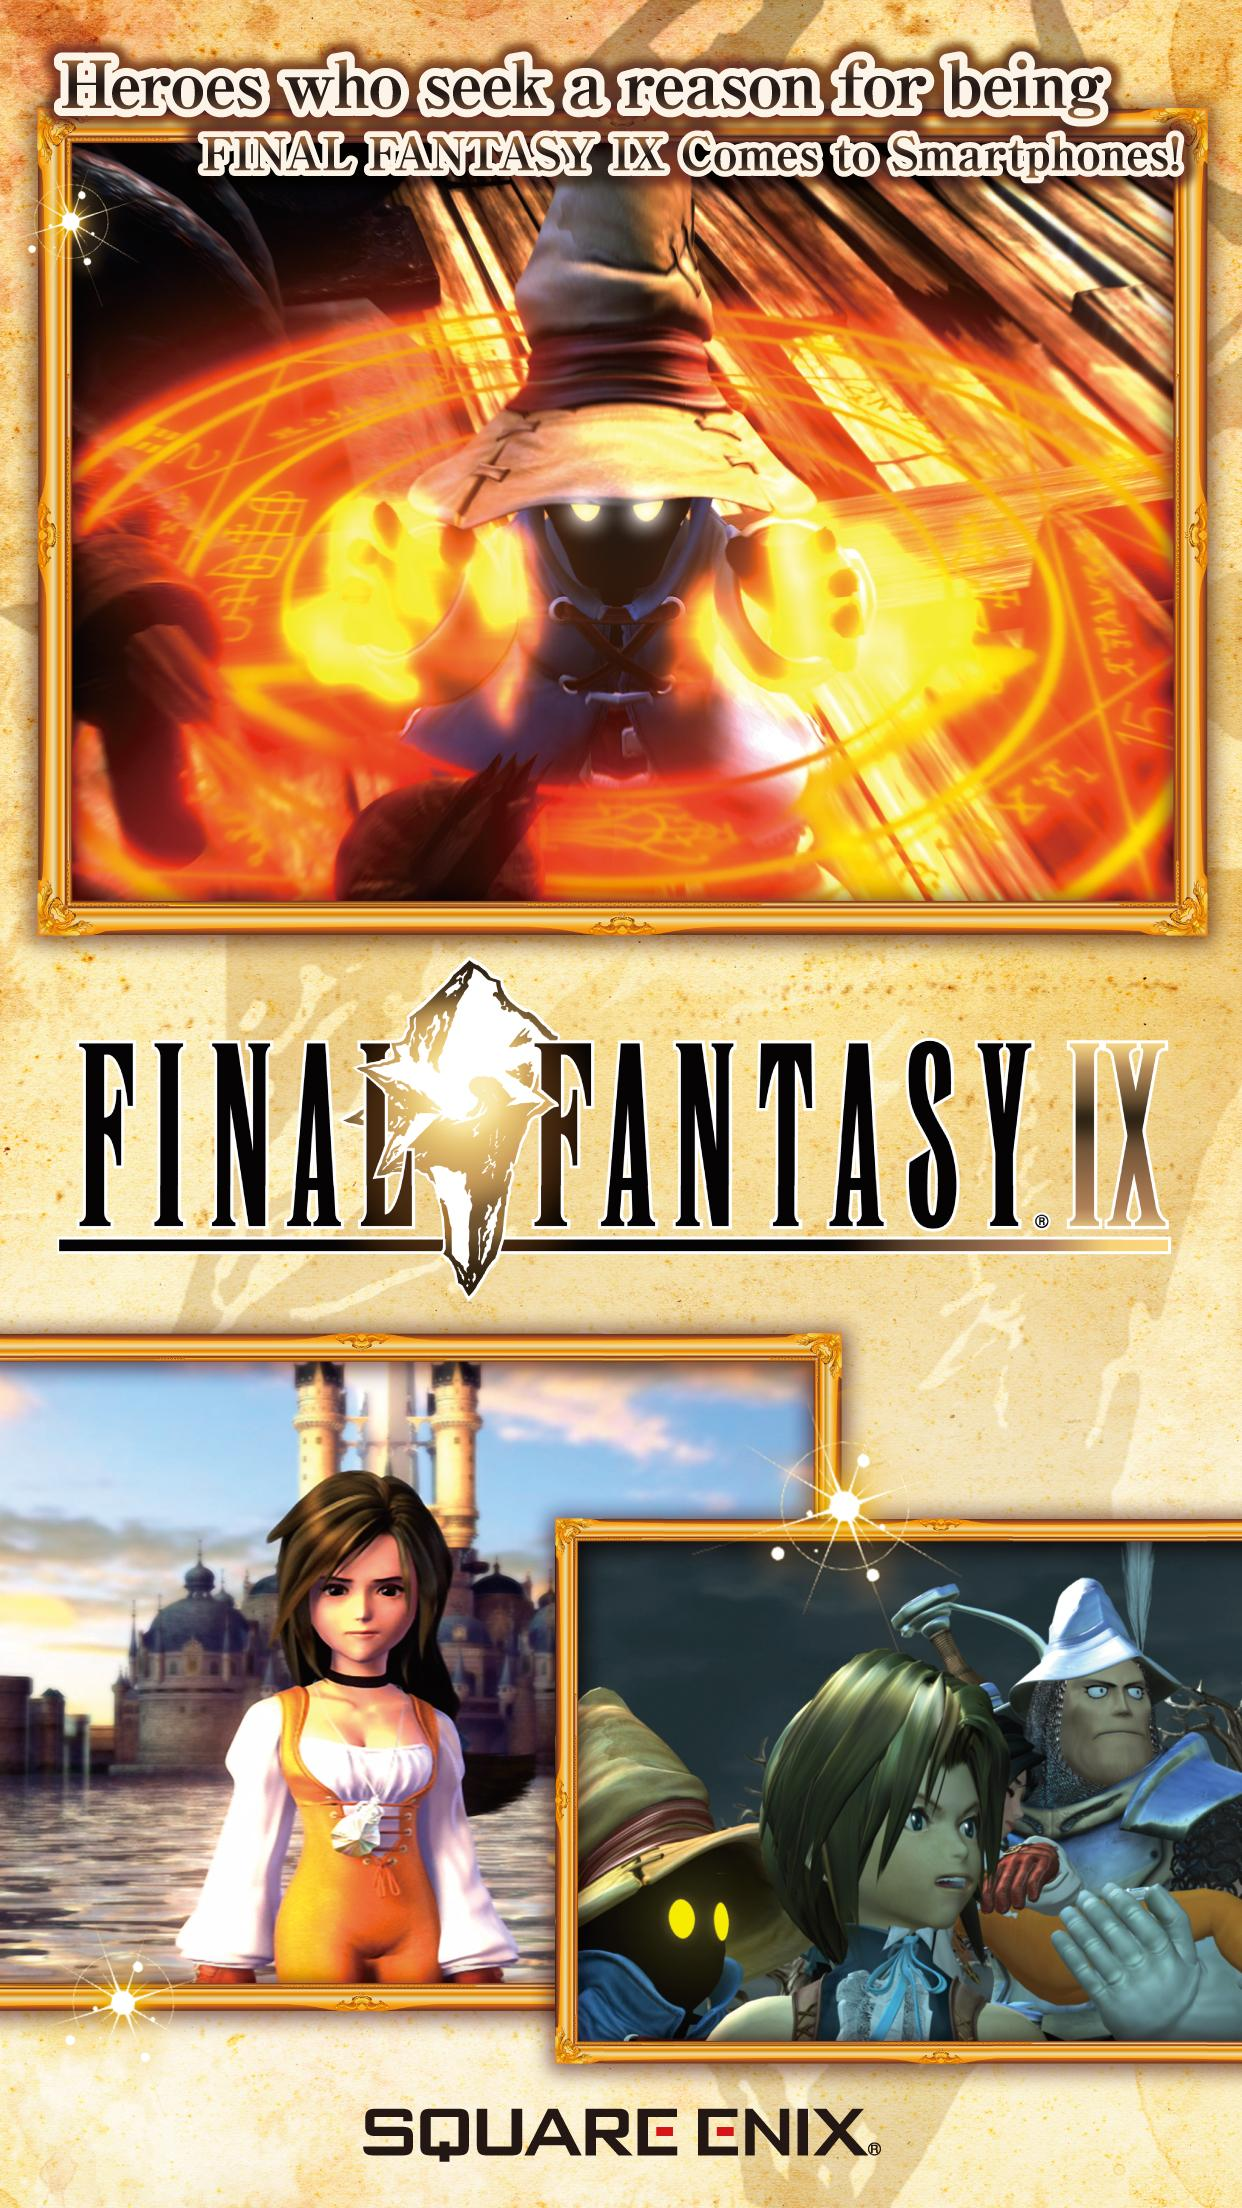 FINAL FANTASY IX for Android image #1